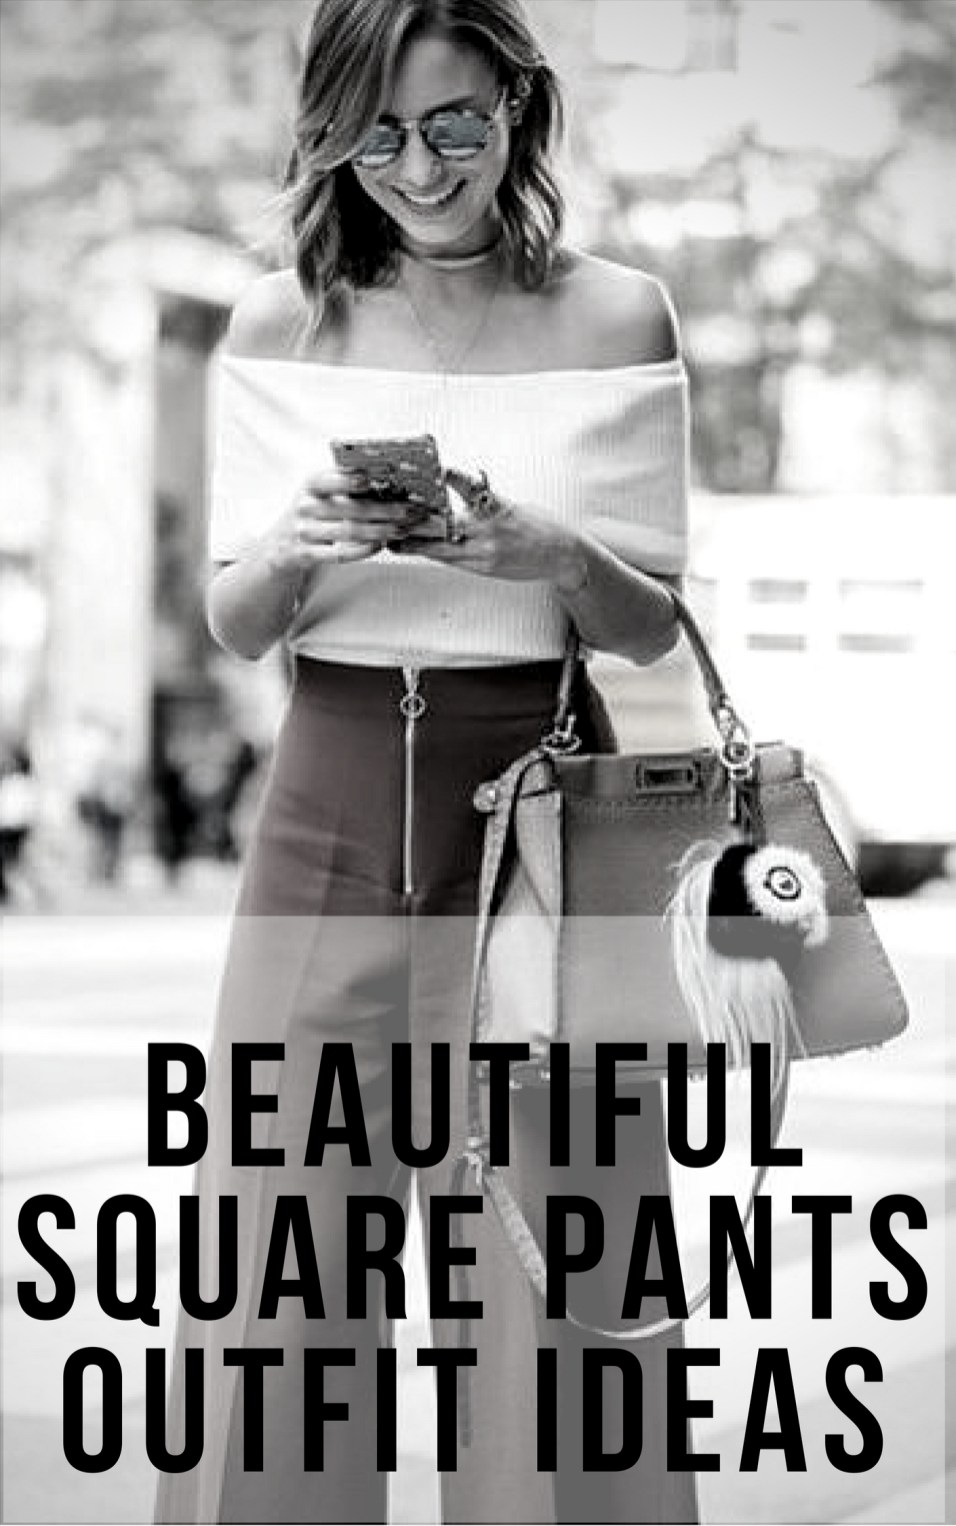 Beautiful square pants outfit ideas